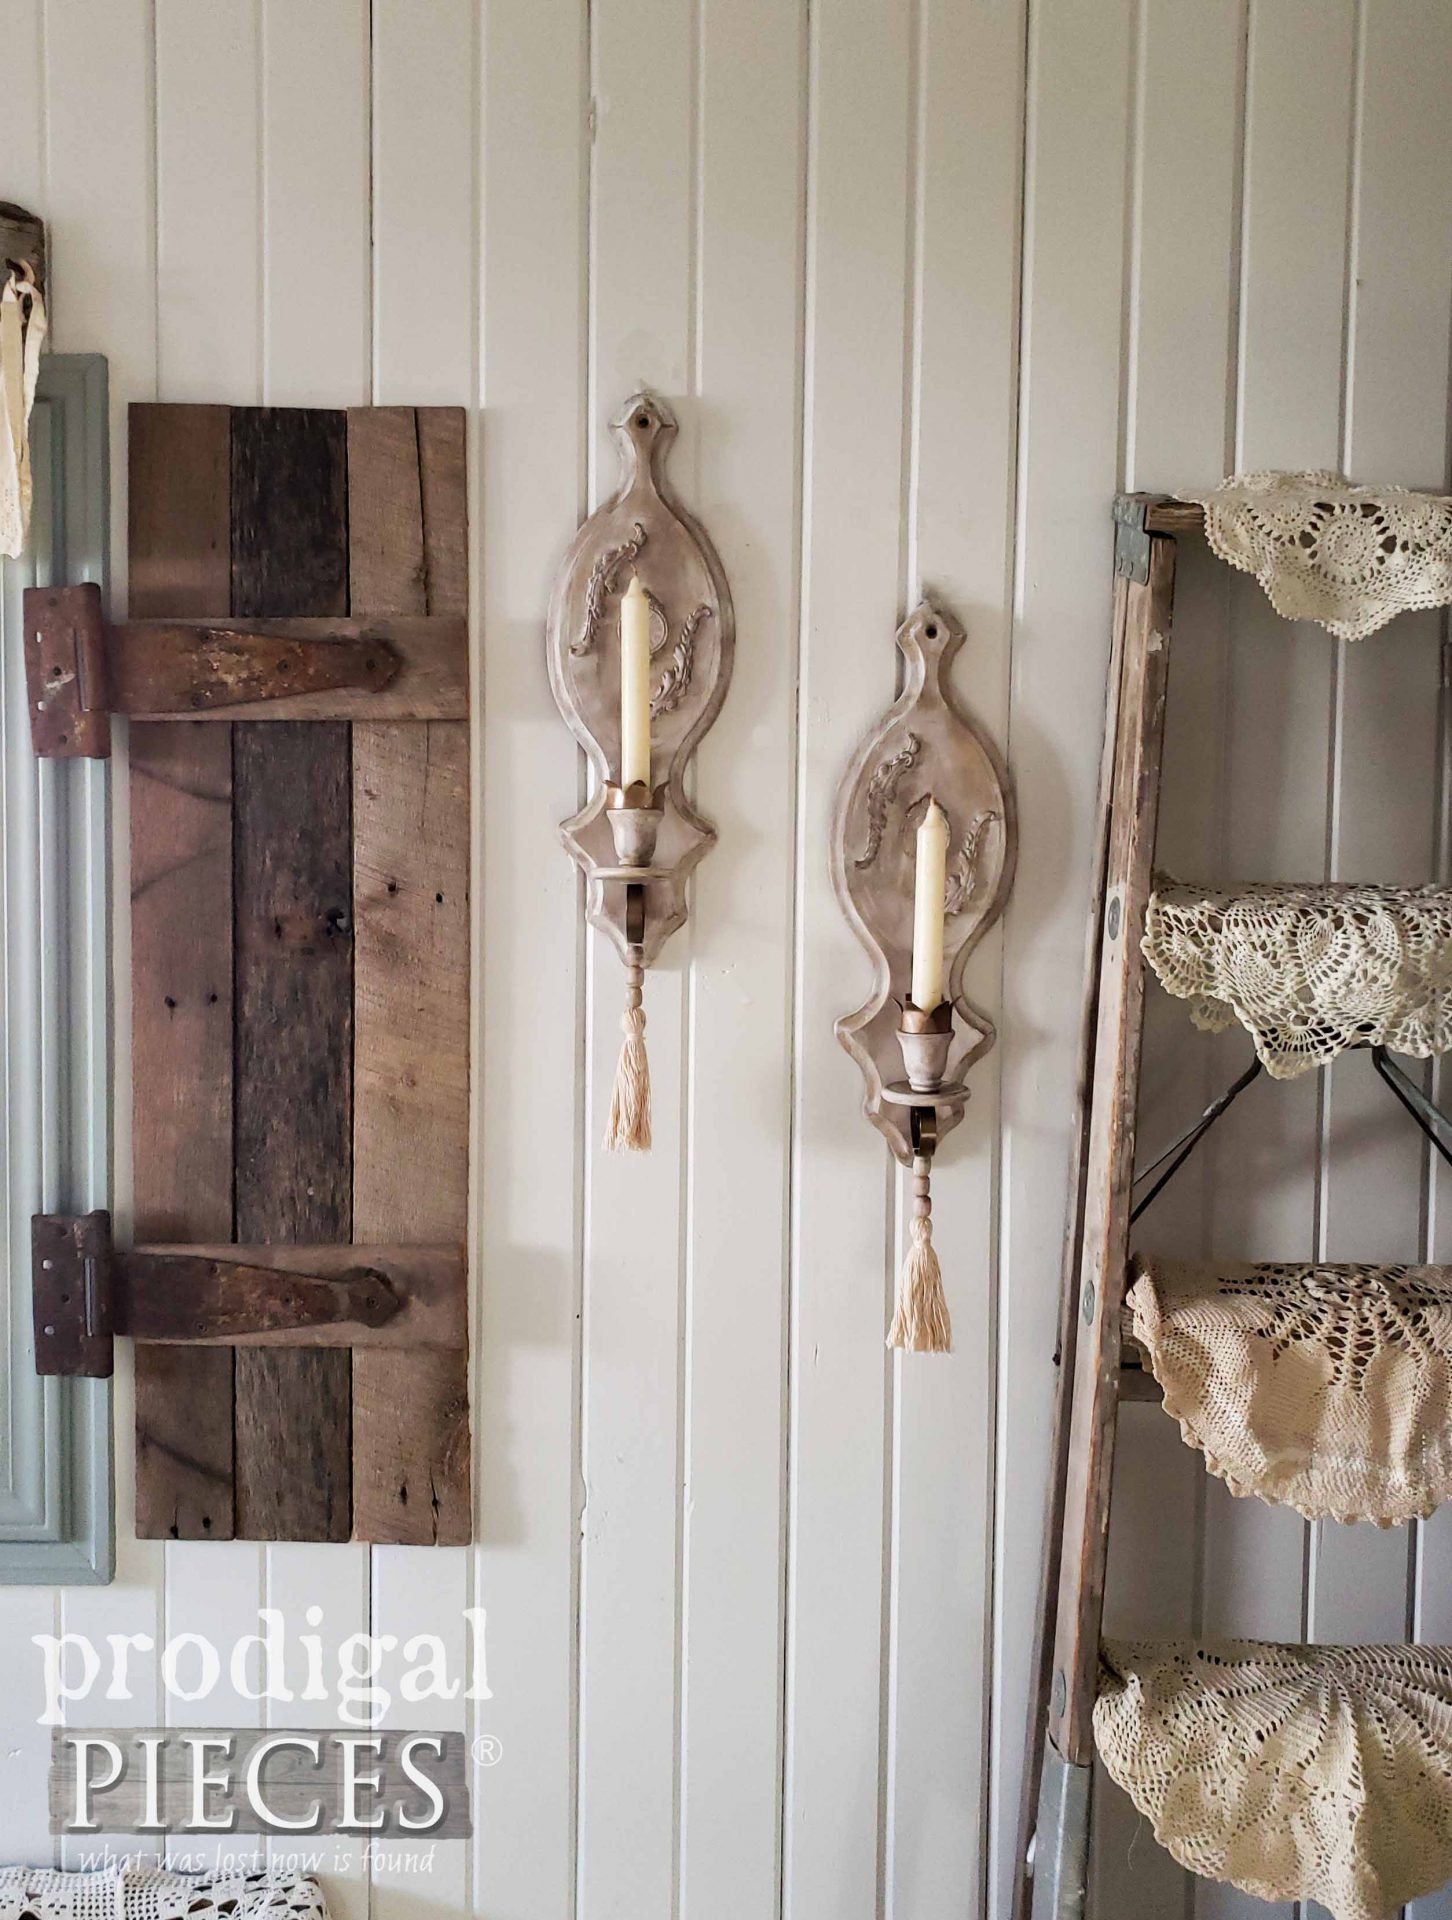 Farmhouse Style Candles Sconces with Beaded Tassels by Larissa of Prodigal Pieces | prodigalpieces.com #prodigalpieces #farmhouse #diy #home #homedecro